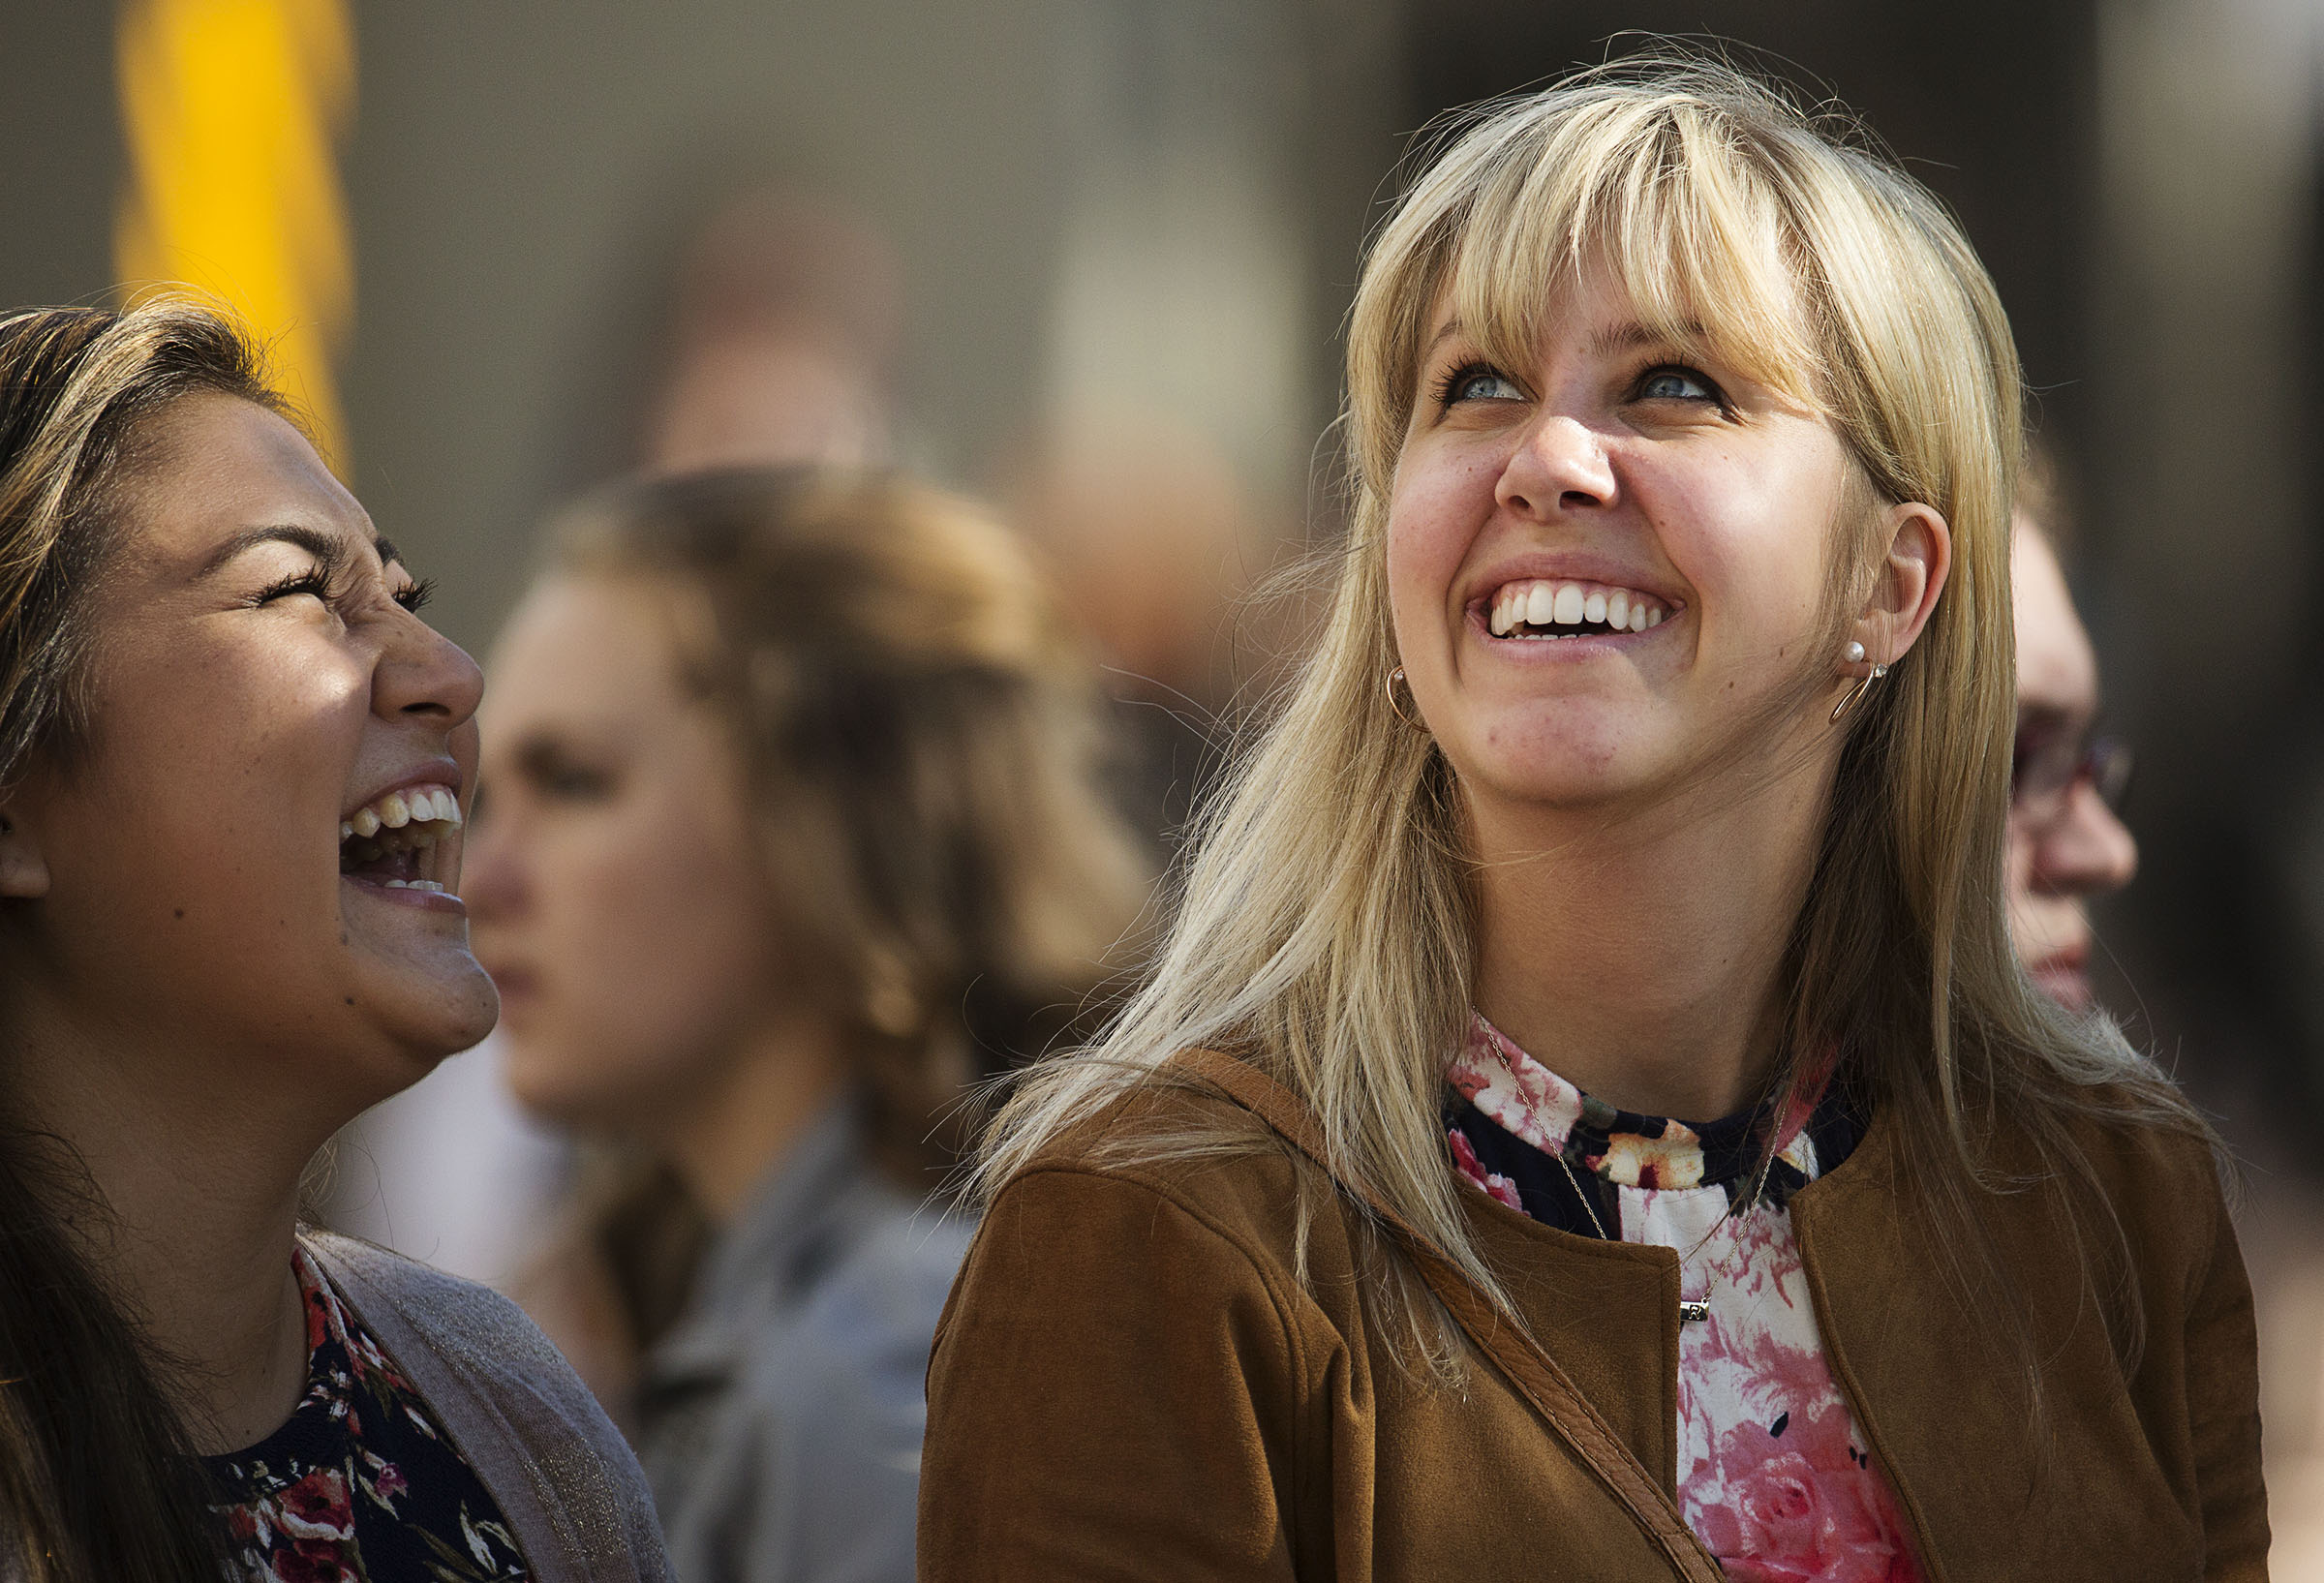 Women smile as they arrive at the Conference Center for the General Women's Session of the 186th Semiannual General Conference in Salt Lake City, Saturday, Sept. 24, 2016. In 2019, an lds.org article outlined how women are essential participants of the priesthood.